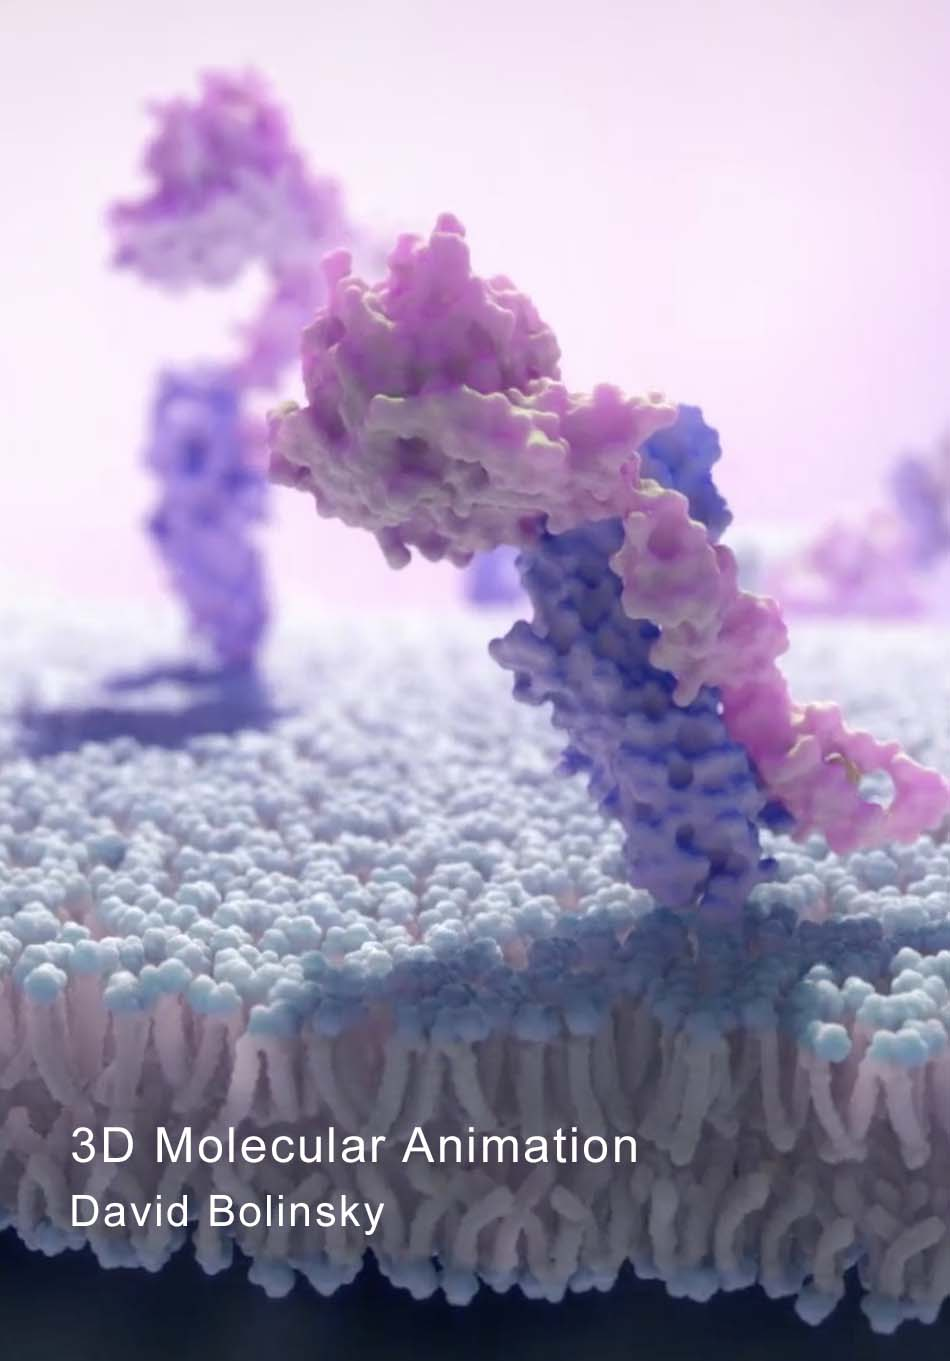 David Bolinsky's animations of molecular machinery in neurons and somatic cells will be featured in video format as well as in print.